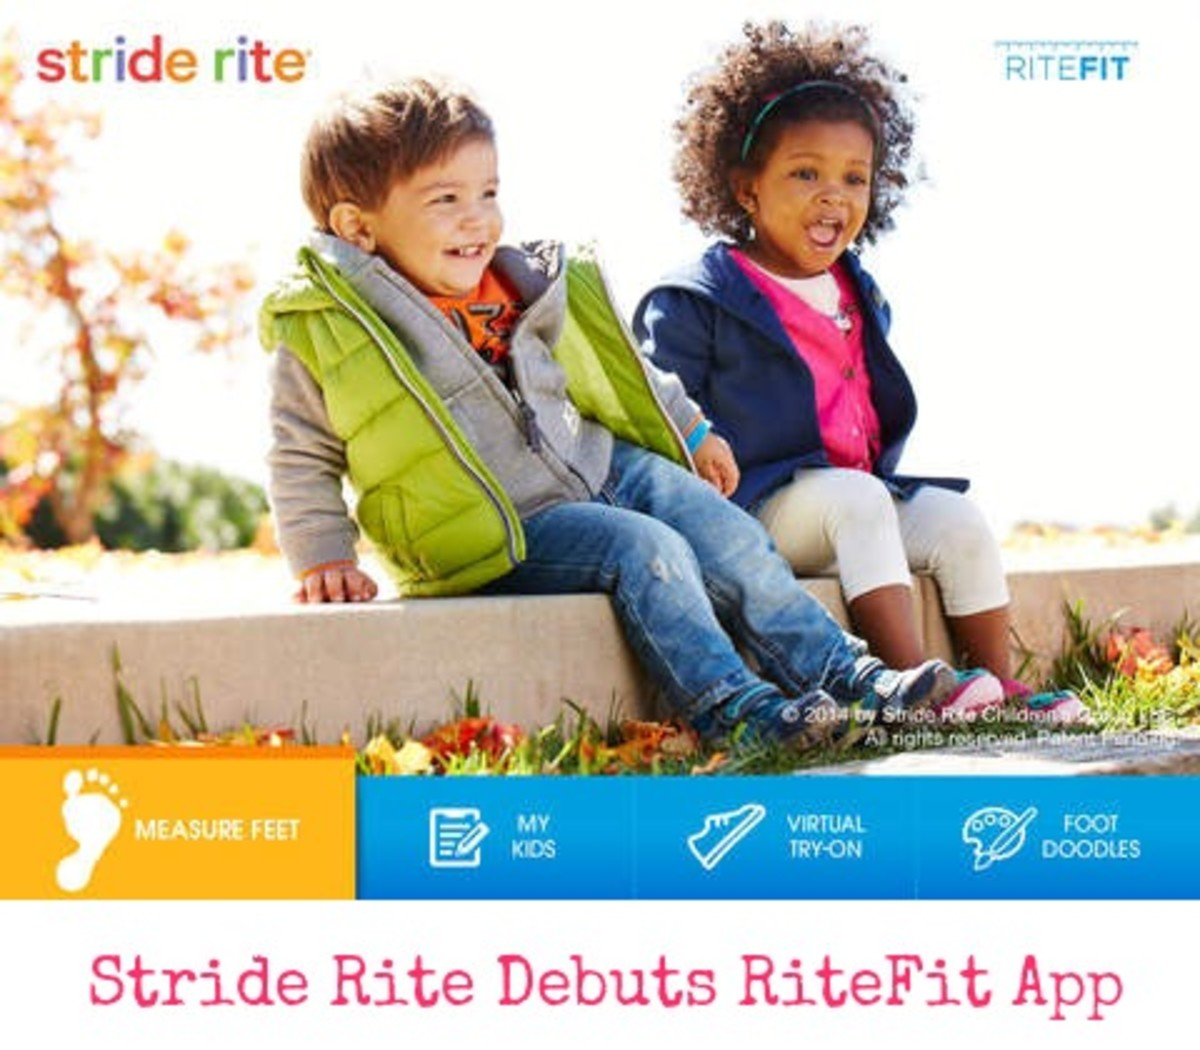 Stride Rite Debuts First Ever RiteFit App